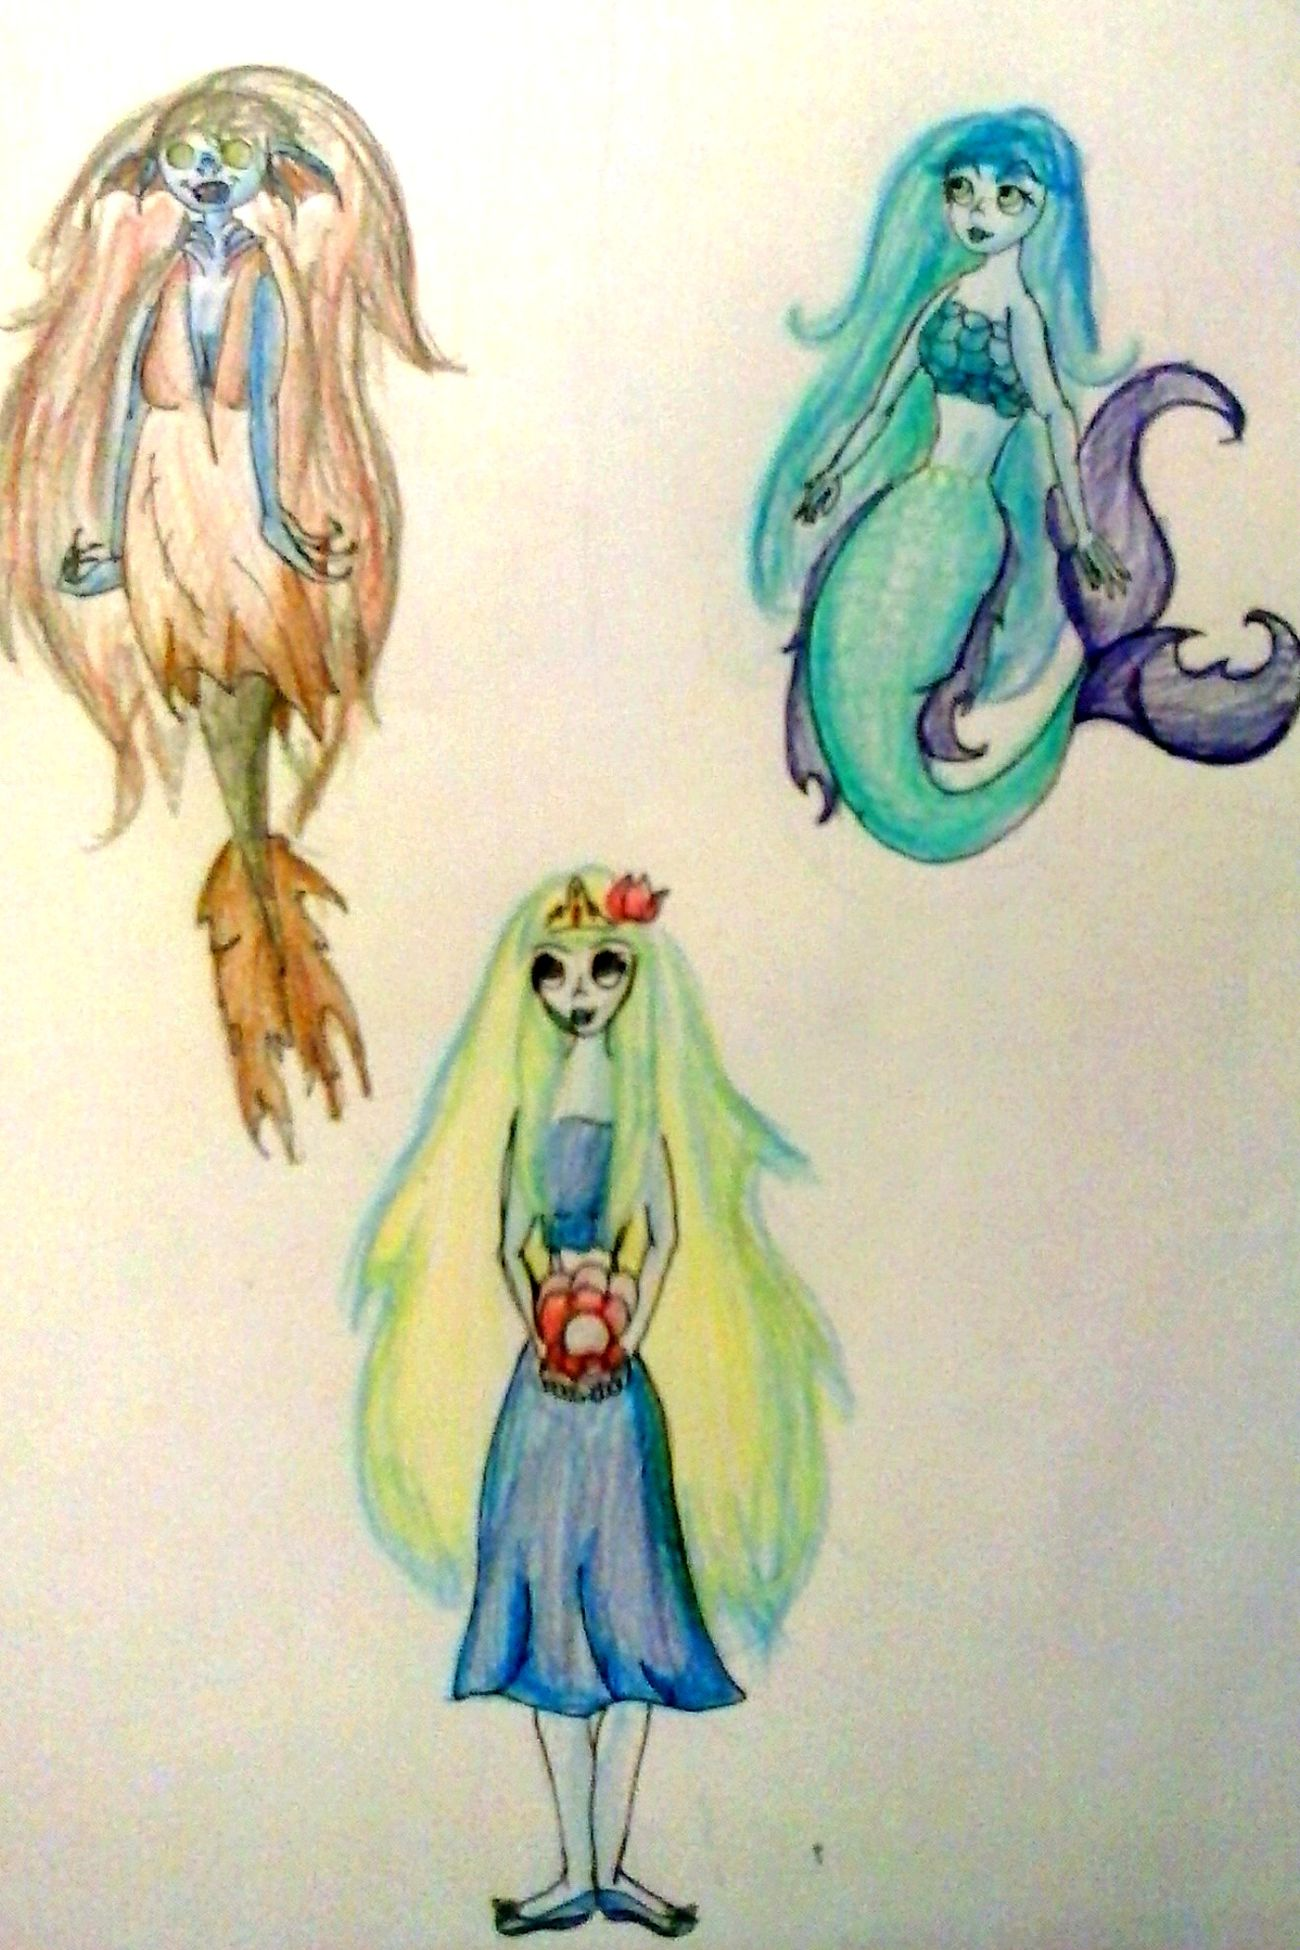 Three kinds of mermaids: undead, race and goddess Mermaid Undead Goddess Race Of Creatures Fabulous Creatures Sea Creatures Art Drawing Creativity